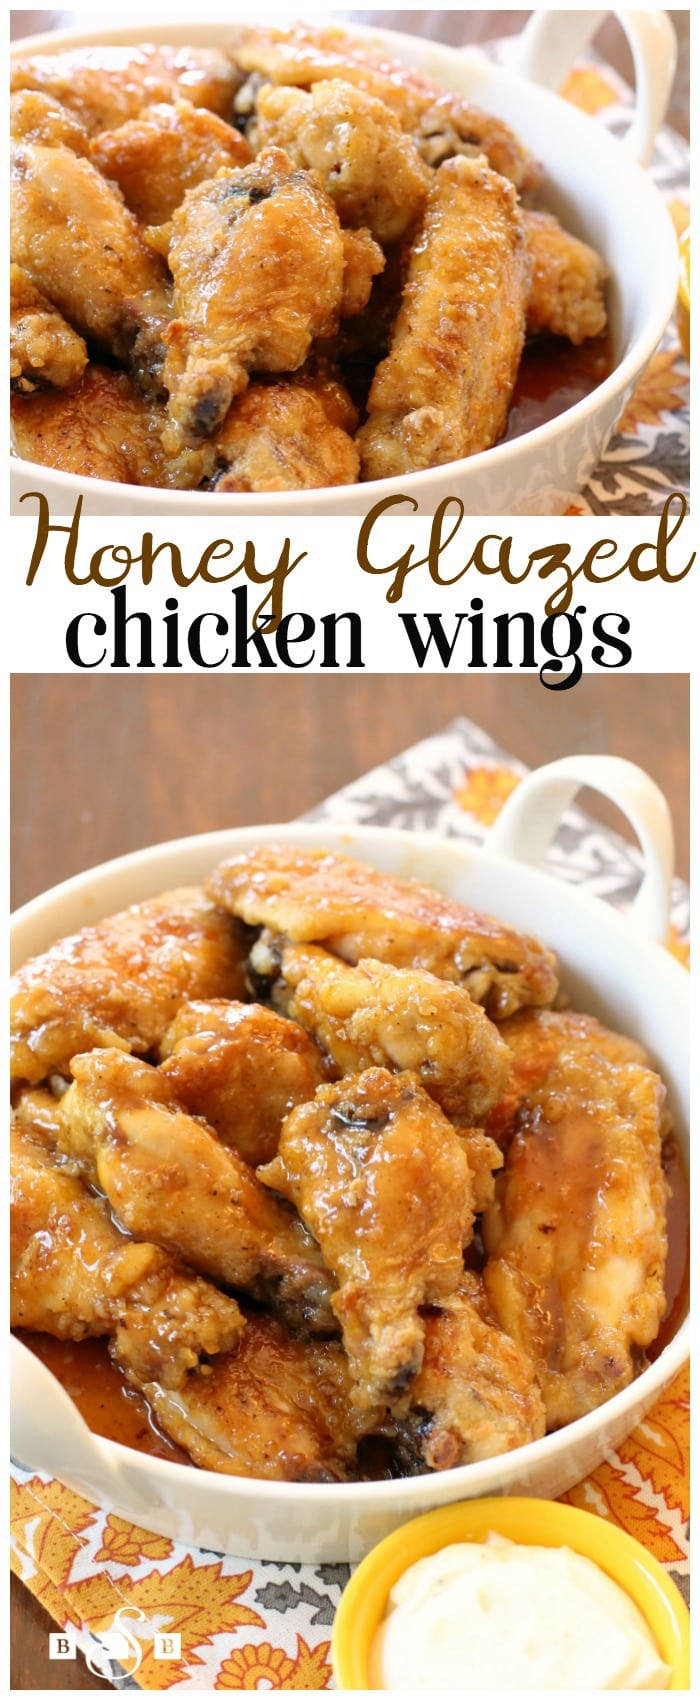 how to cook honey glazed chicken wings